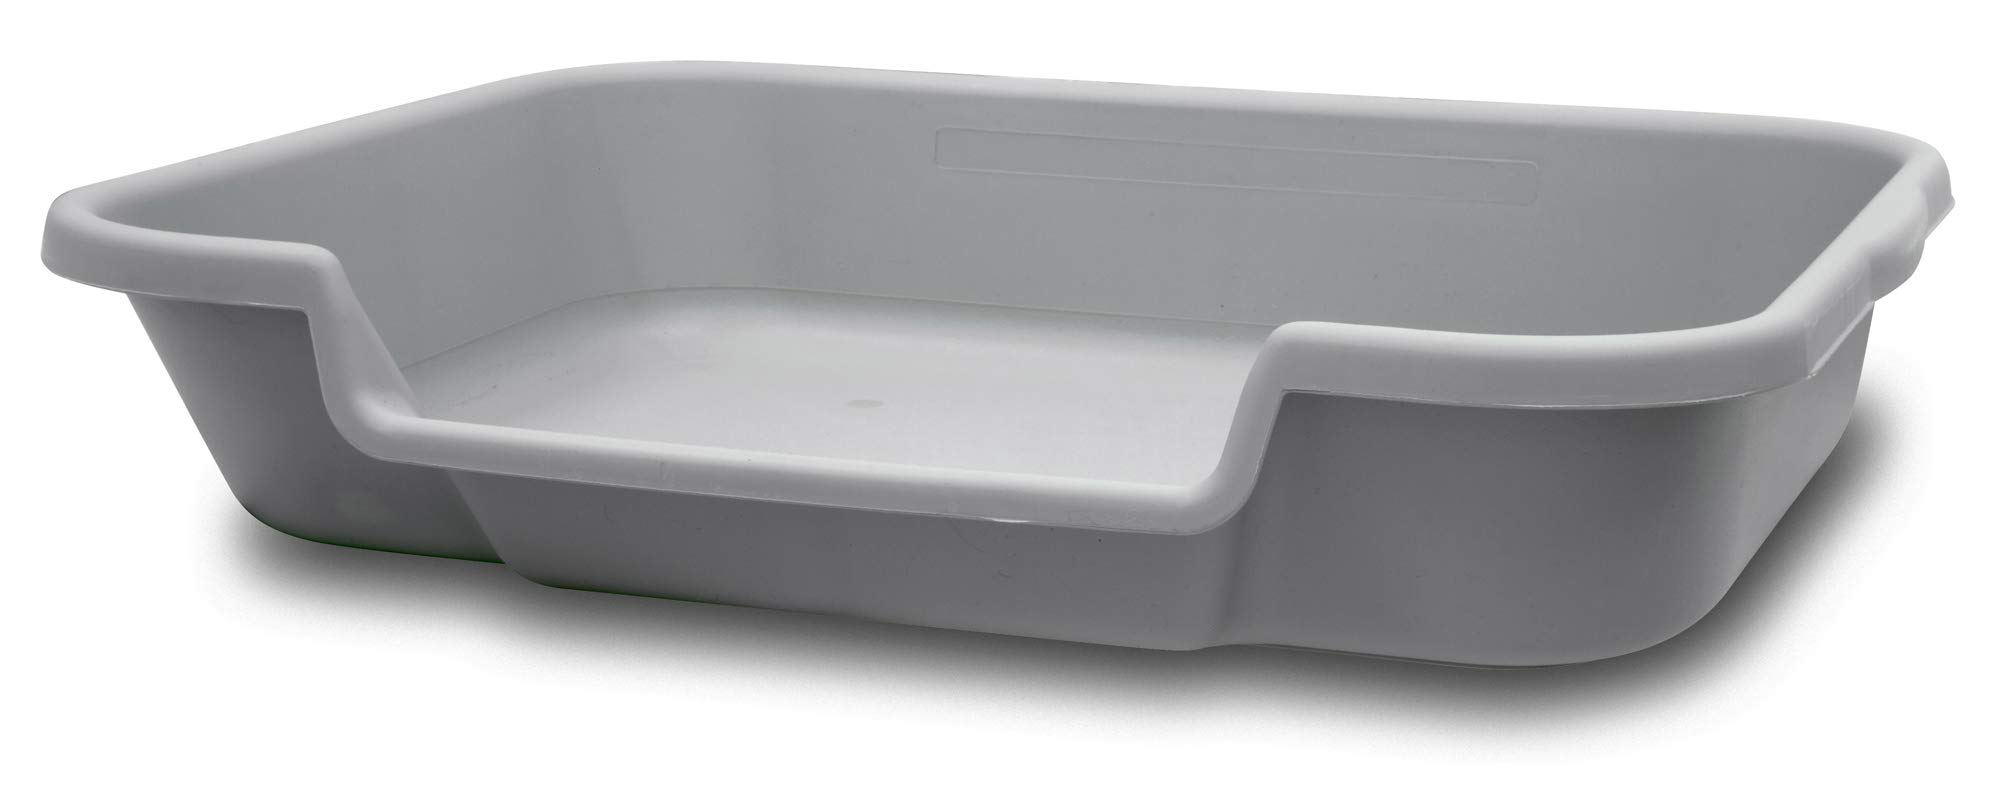 Bunny Go Here Rabbit Litter Box by Kit's Pet Pans. Large Size 24''x20''x5'' Recycled Gray Plastic Color Low Opening so Bunny can Move in and Out of The pan Easily. USA Made by Bunny Go Here Rabbit Litter Box by Kit's Pet Pans